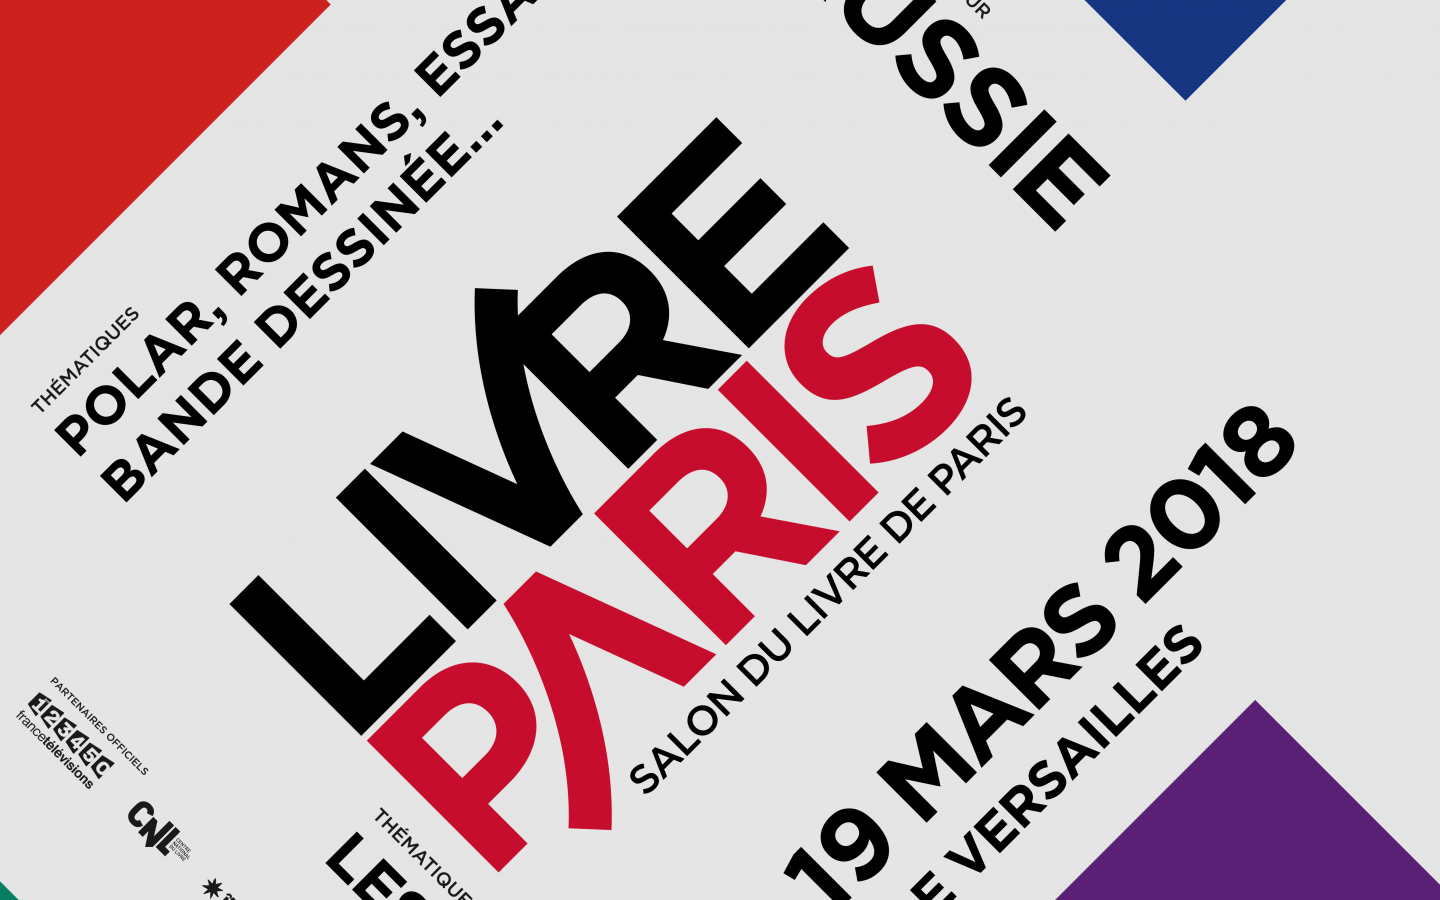 salon livre paris 2018 syndicat national de l 39 dition